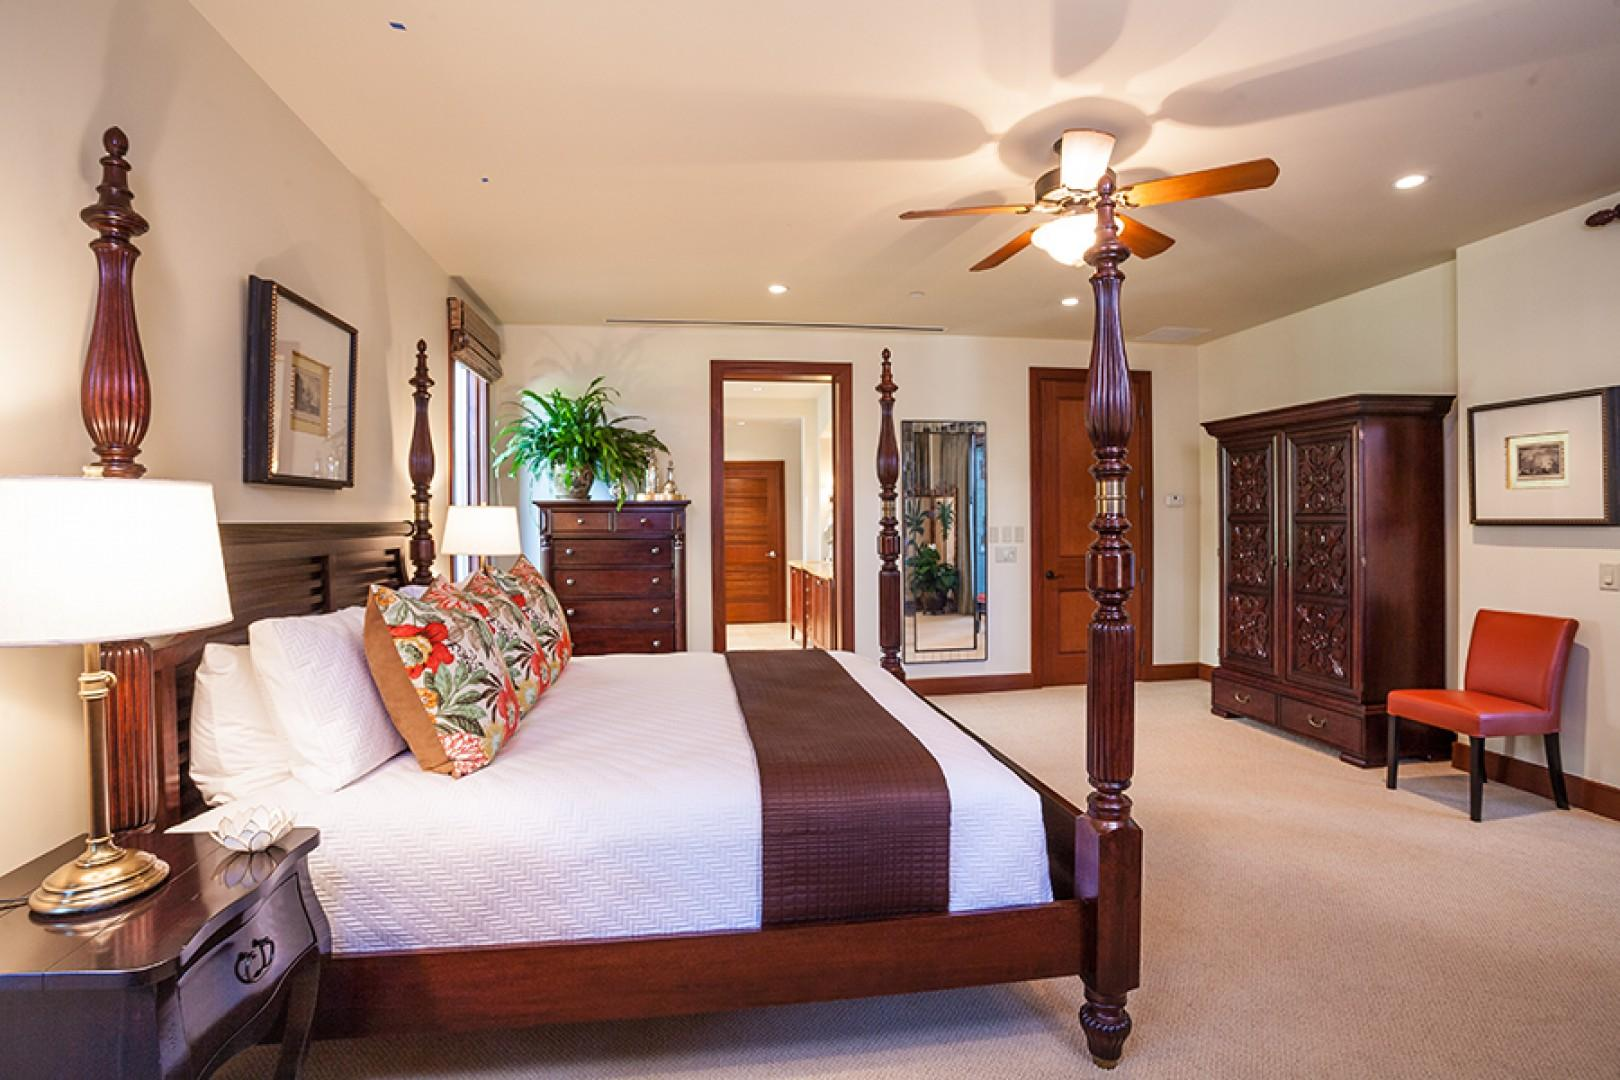 Castaway Cove C201 - Ocean View Master Bedroom with King Bed, Private En-Suite Bath and Direct Access to Ocean View Terrace